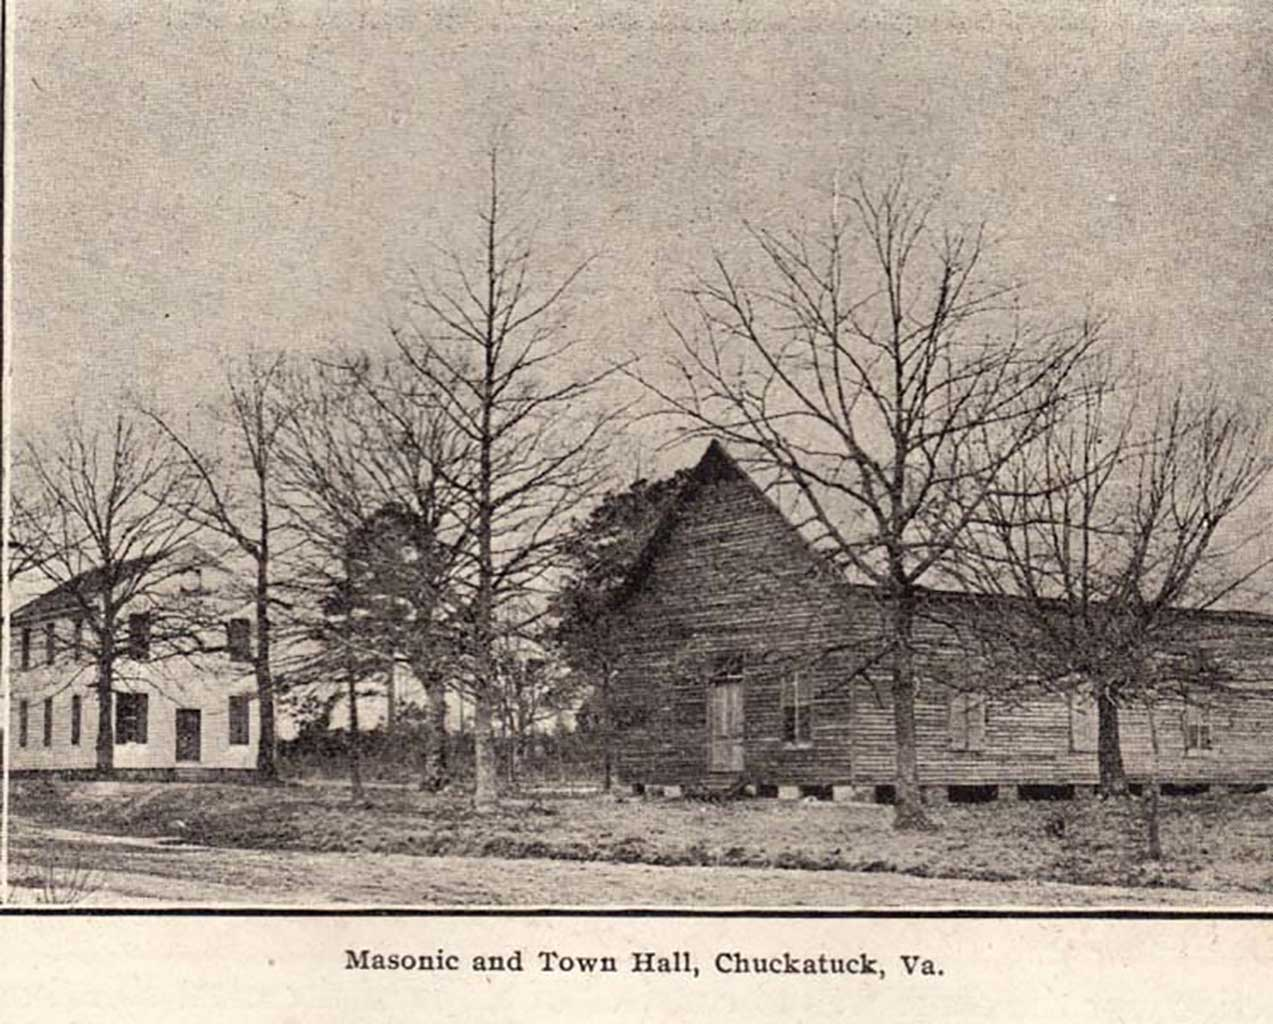 masonic-and-town-hall-in-chuckatuck-tmp6c2e_1024x7681